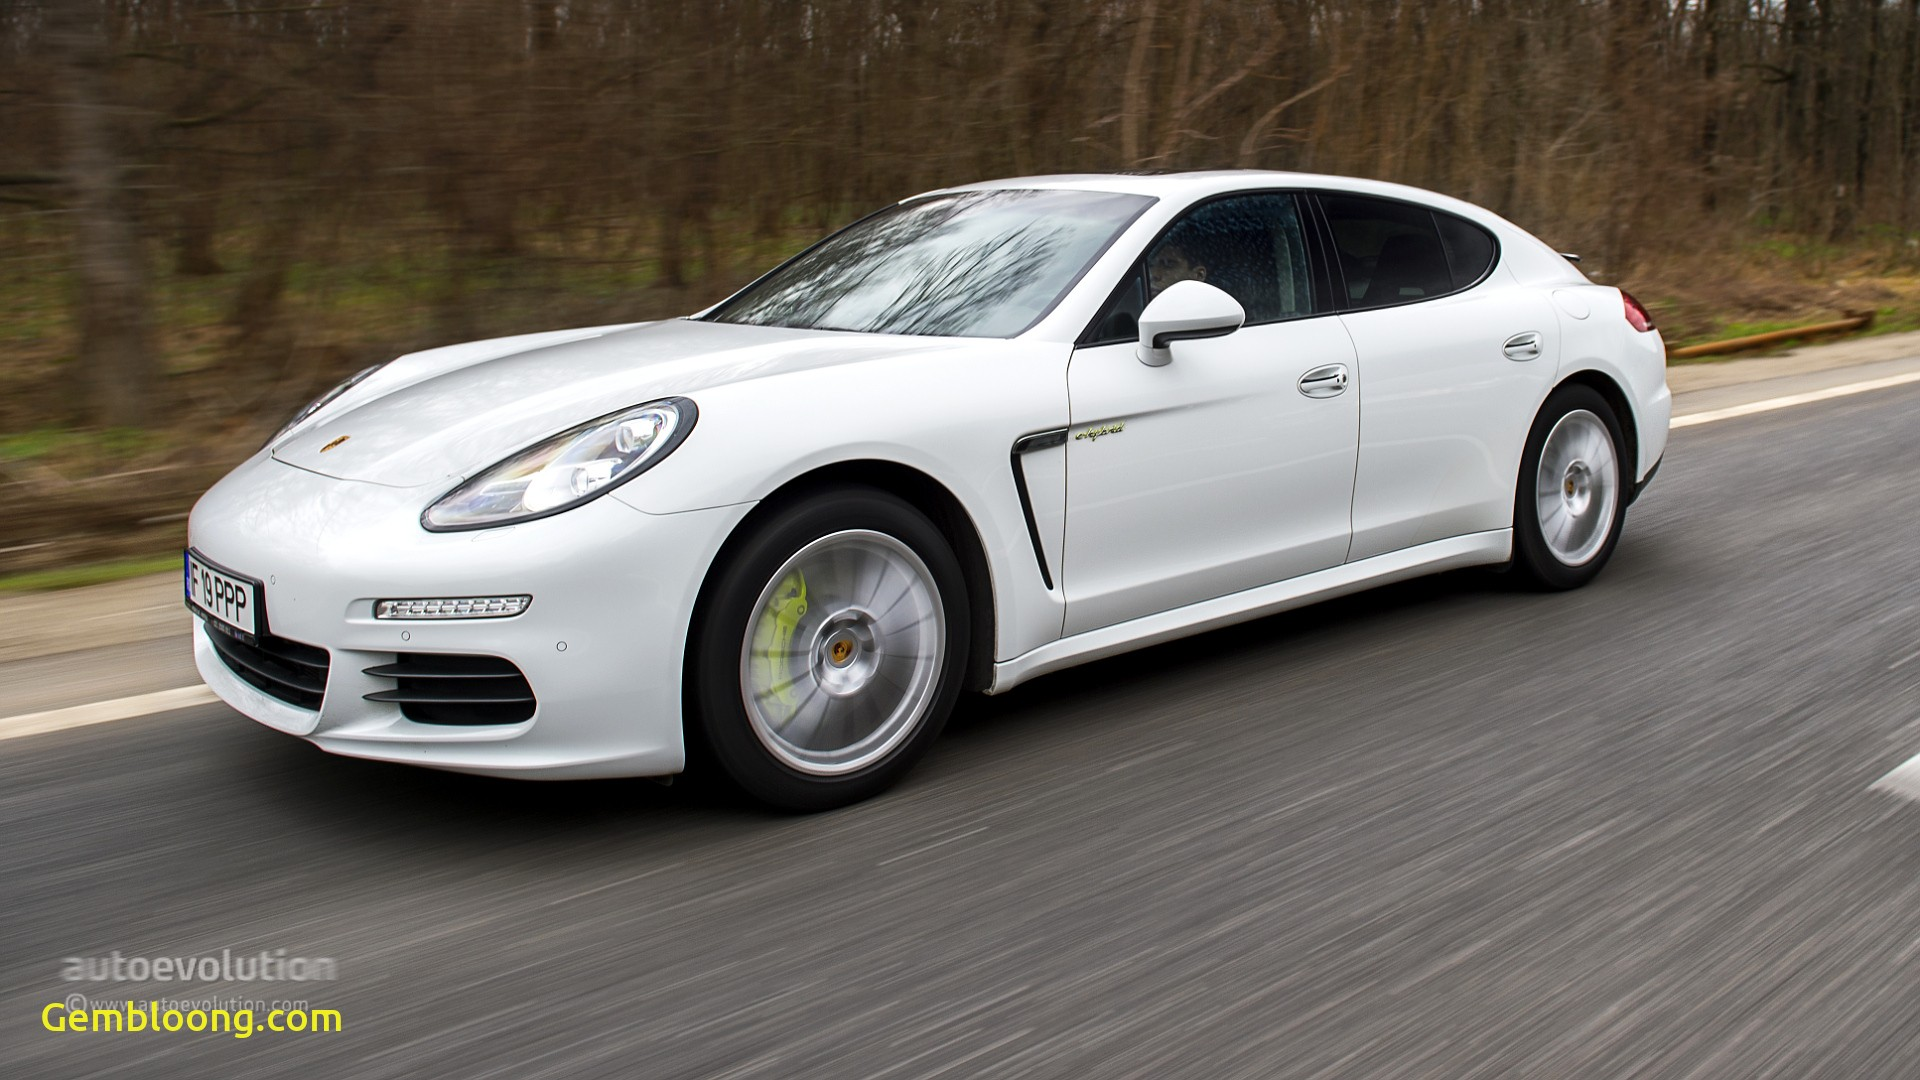 2012 Porsche Panamera Best Of 2015 Porsche Panamera S E Hybrid Review Autoevolution